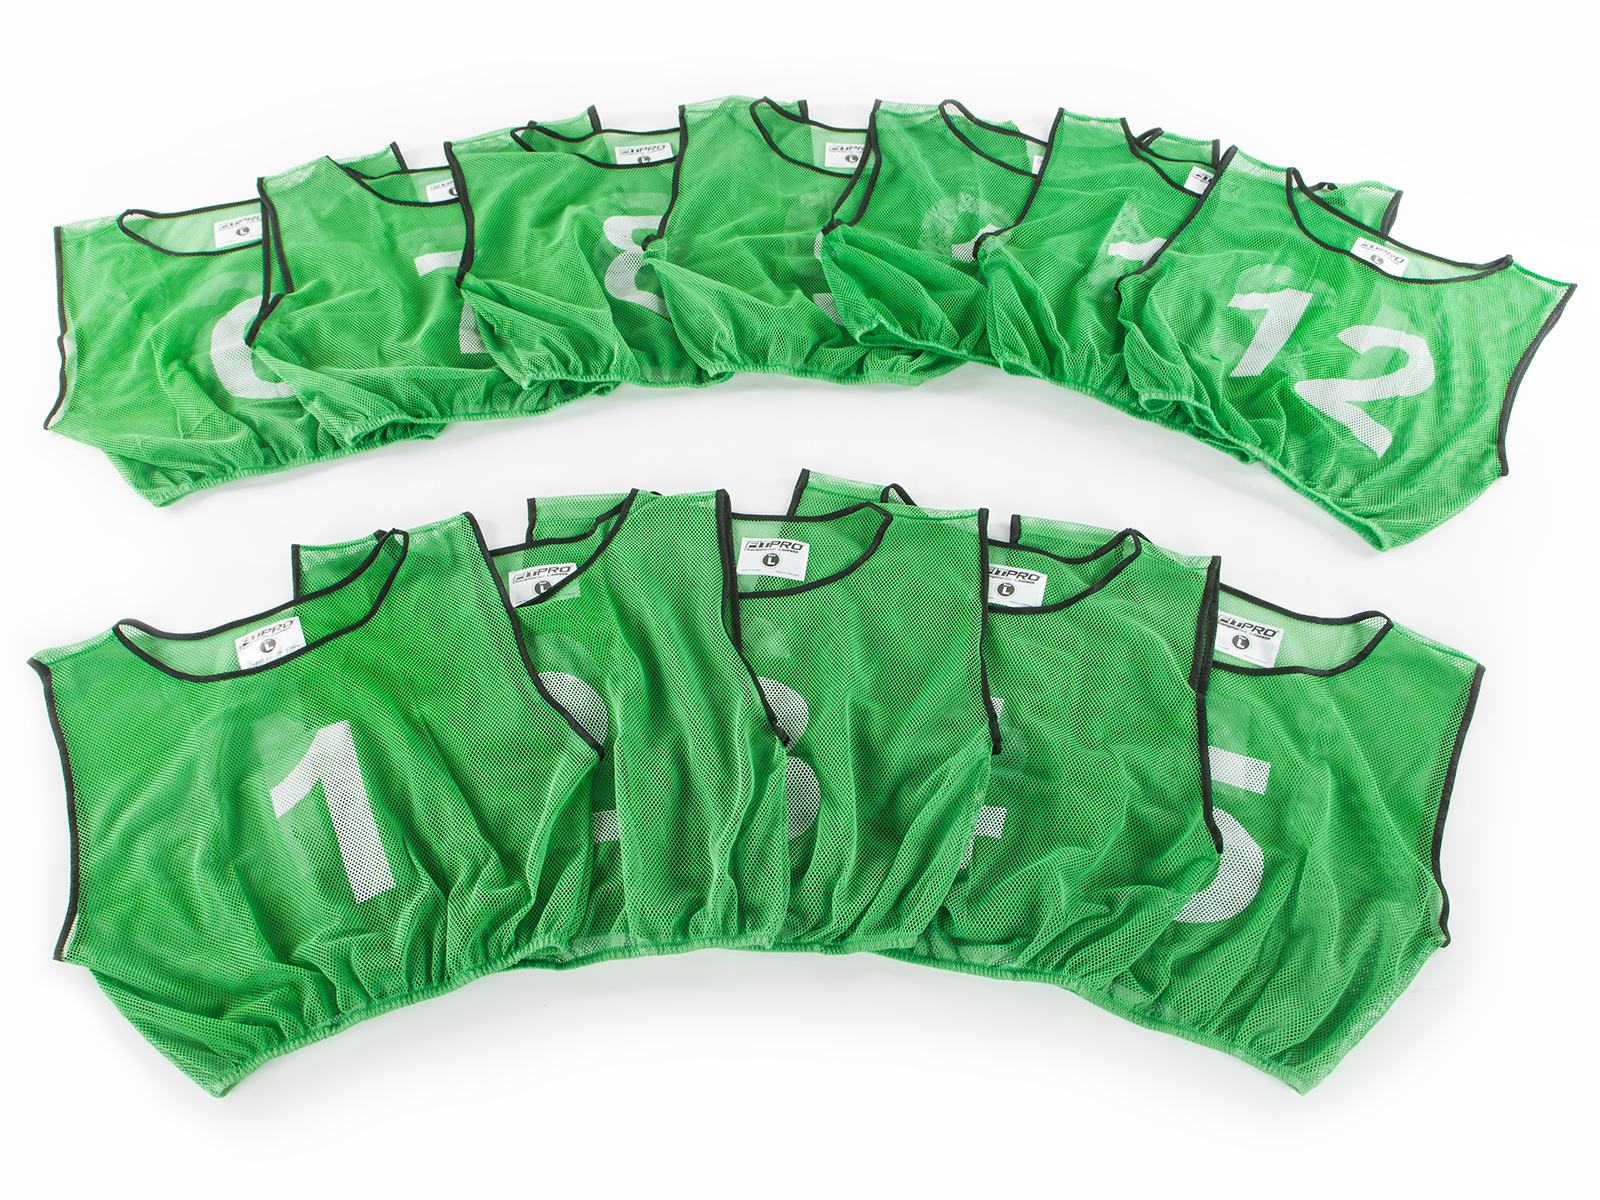 FitPro Champion Numbered Mesh Vest Pack - Large, Green, Set of 12